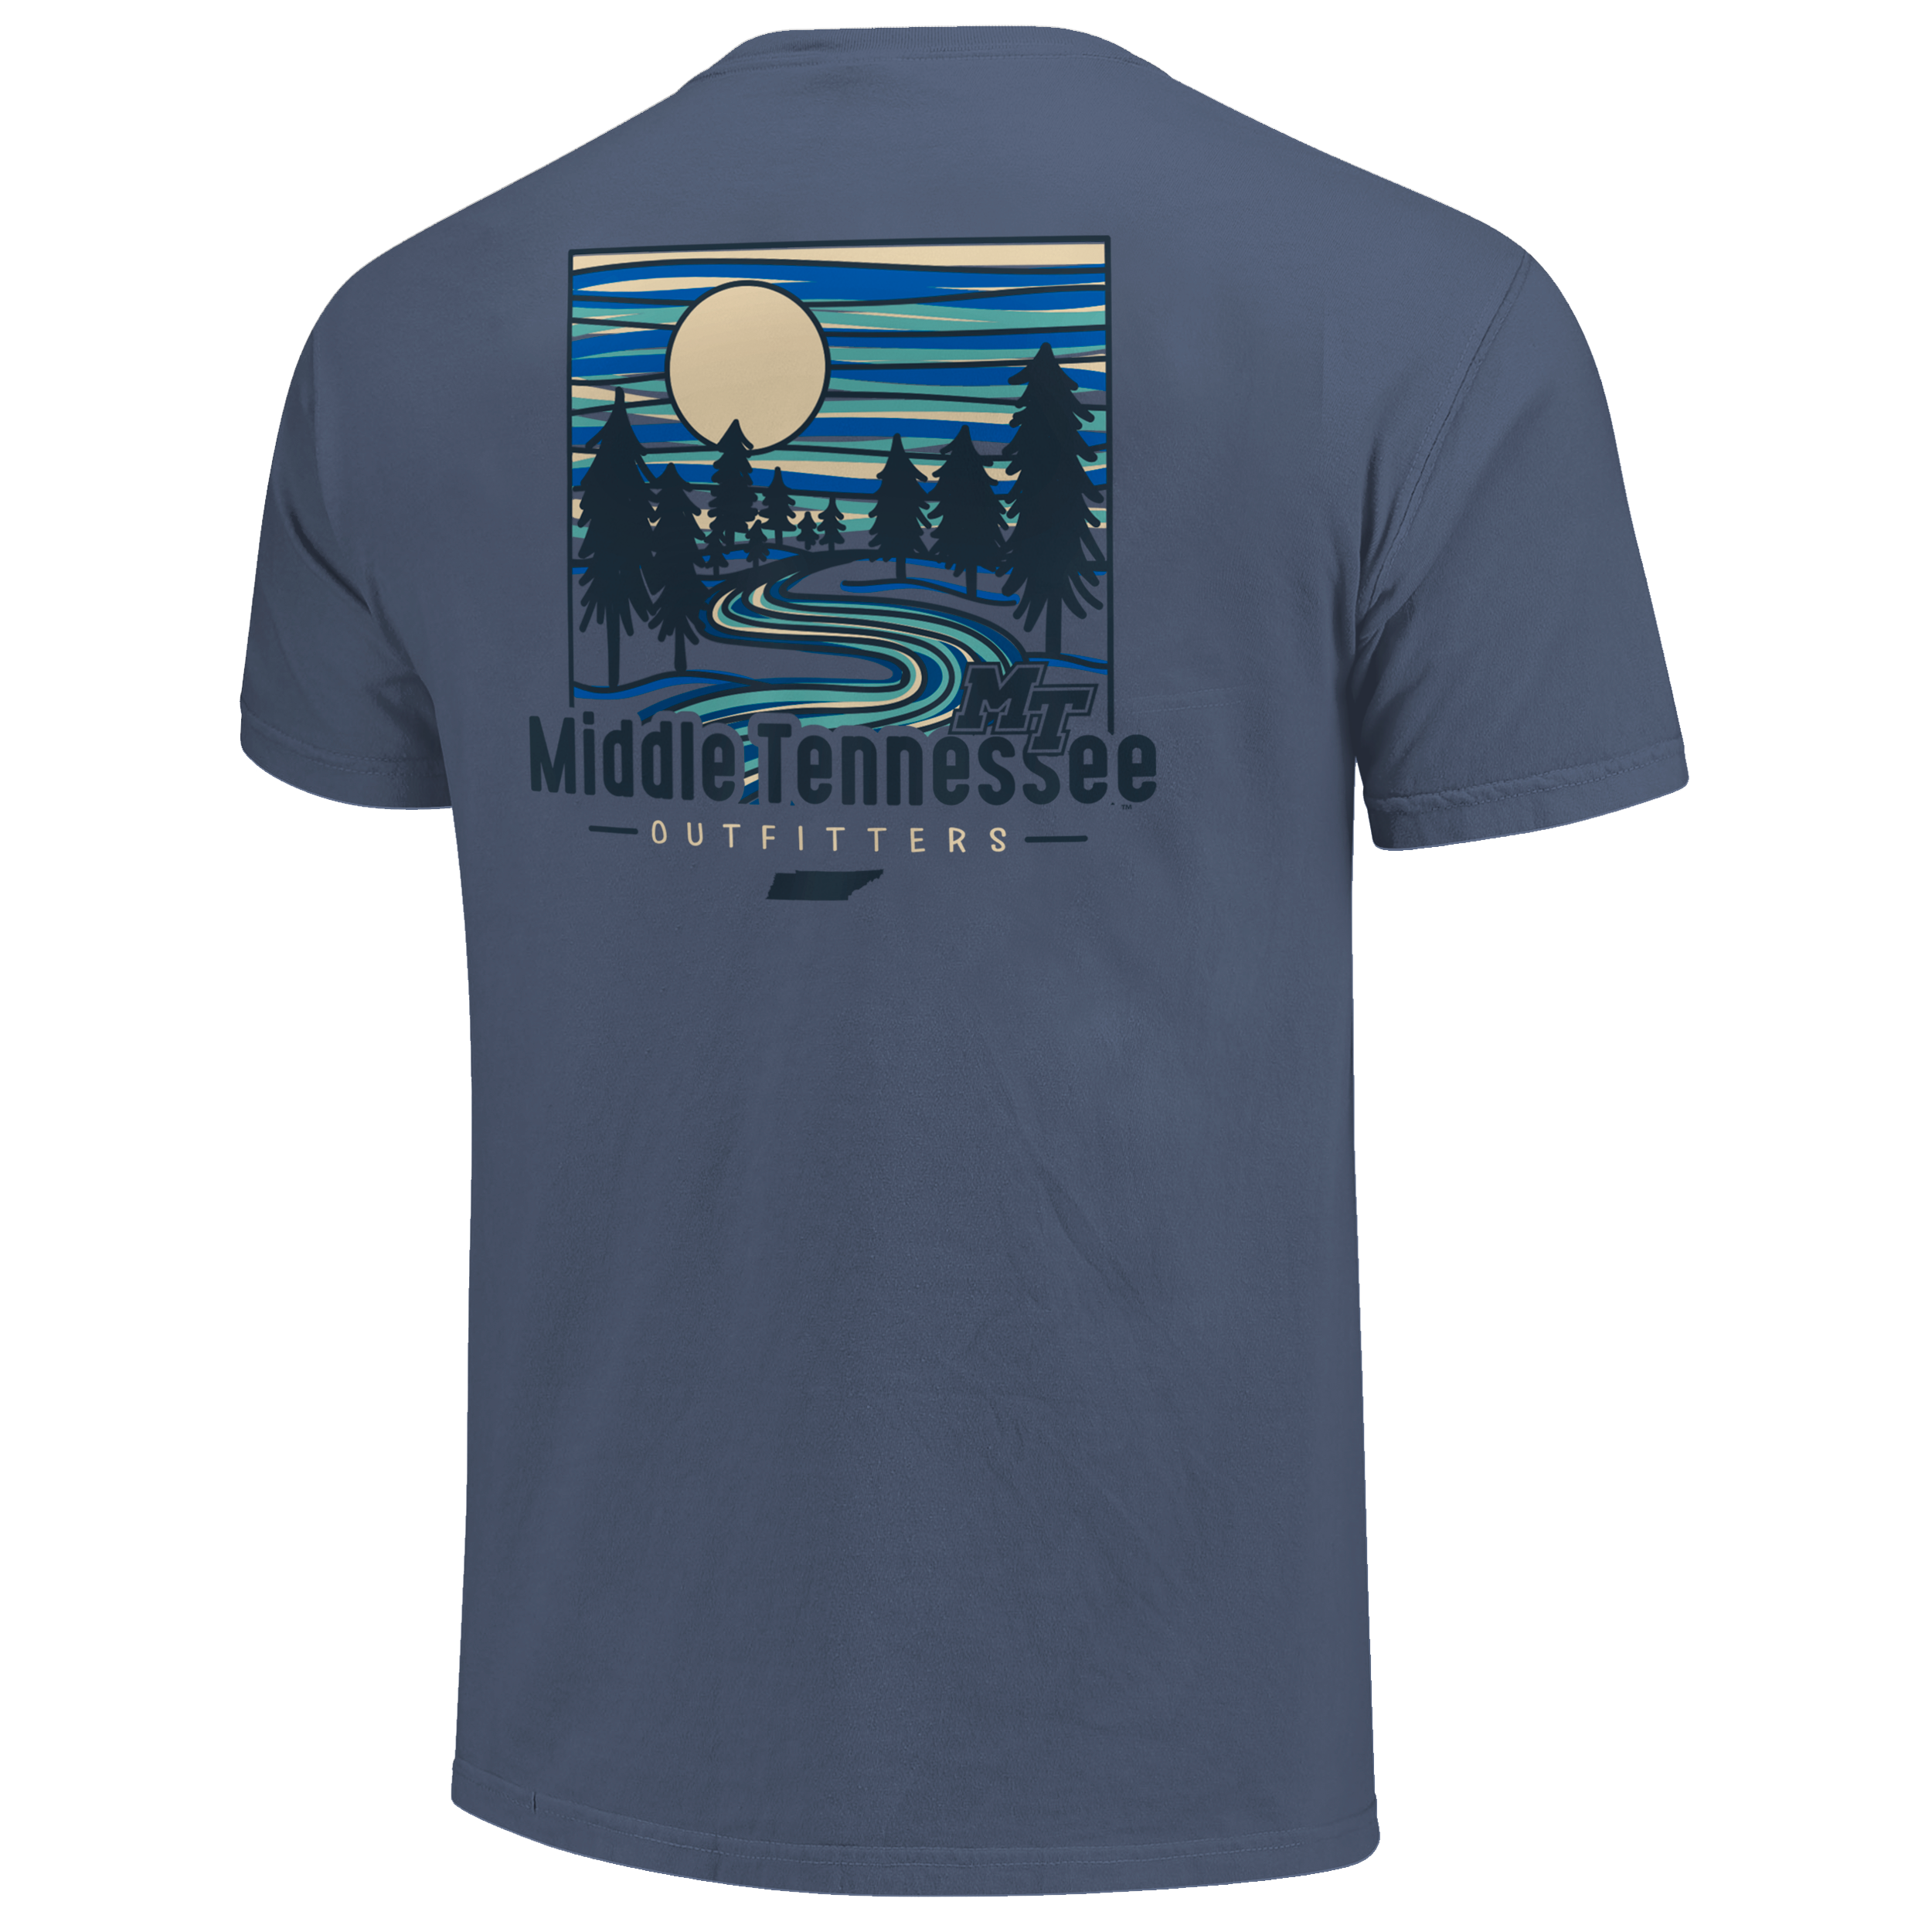 Middle Tennessee Outfitters Comfort Colors Shirt